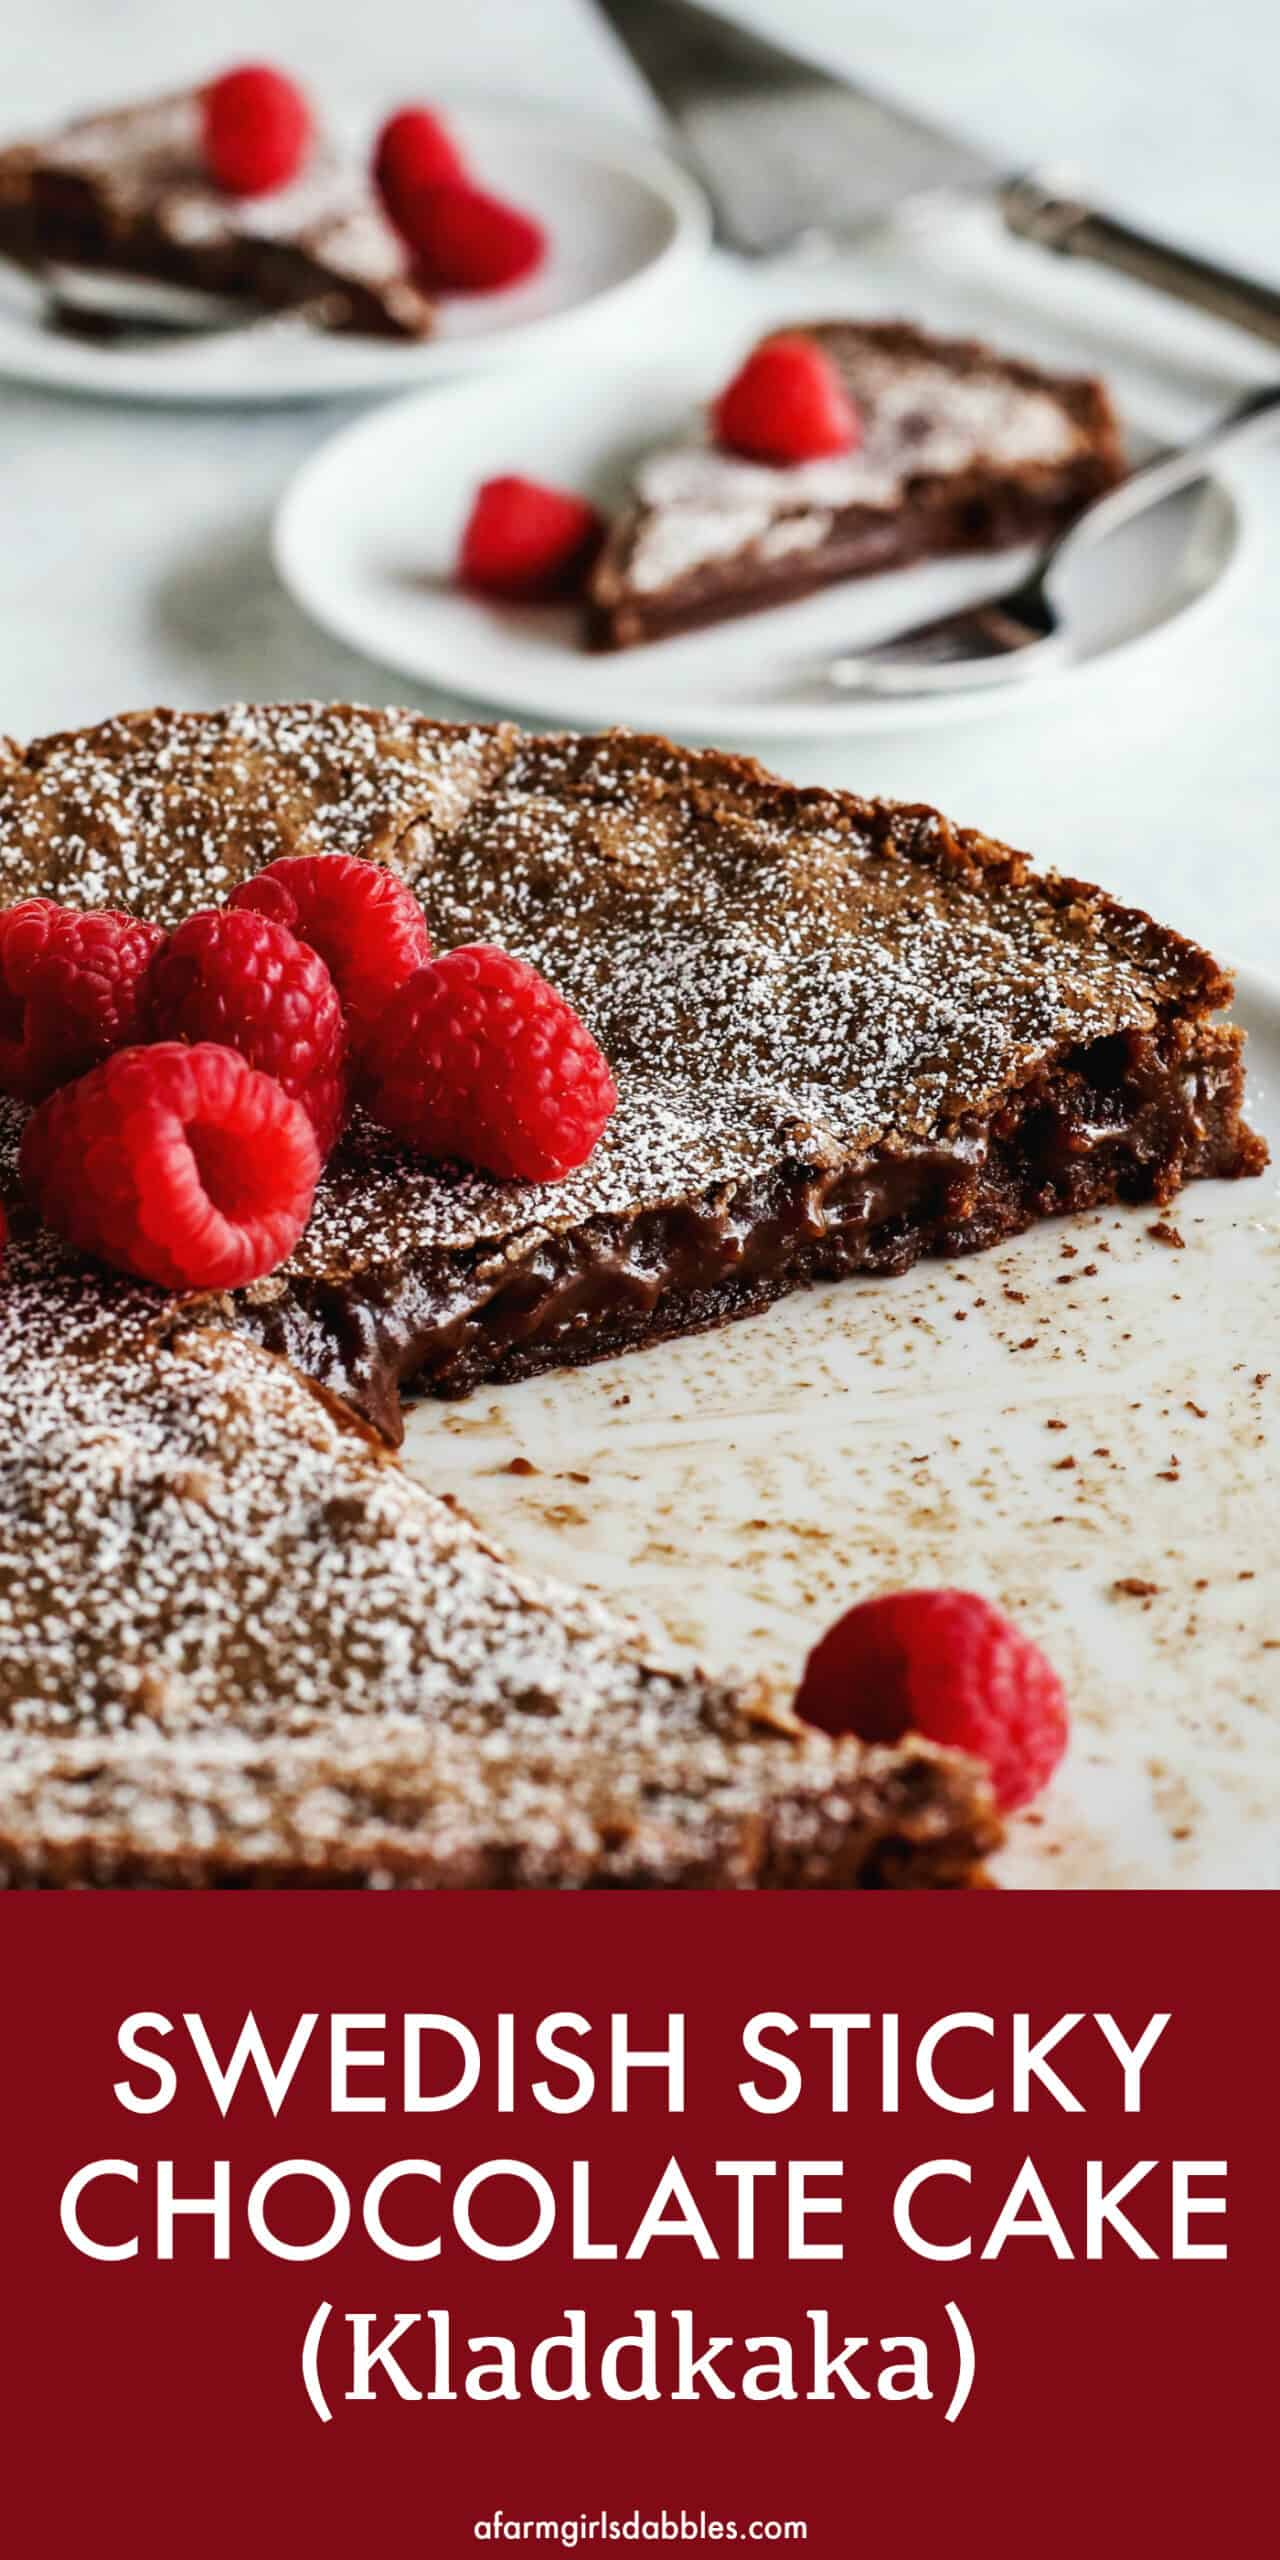 Pinterest image of Swedish Kladdkaka chocolate cake on white cake plate